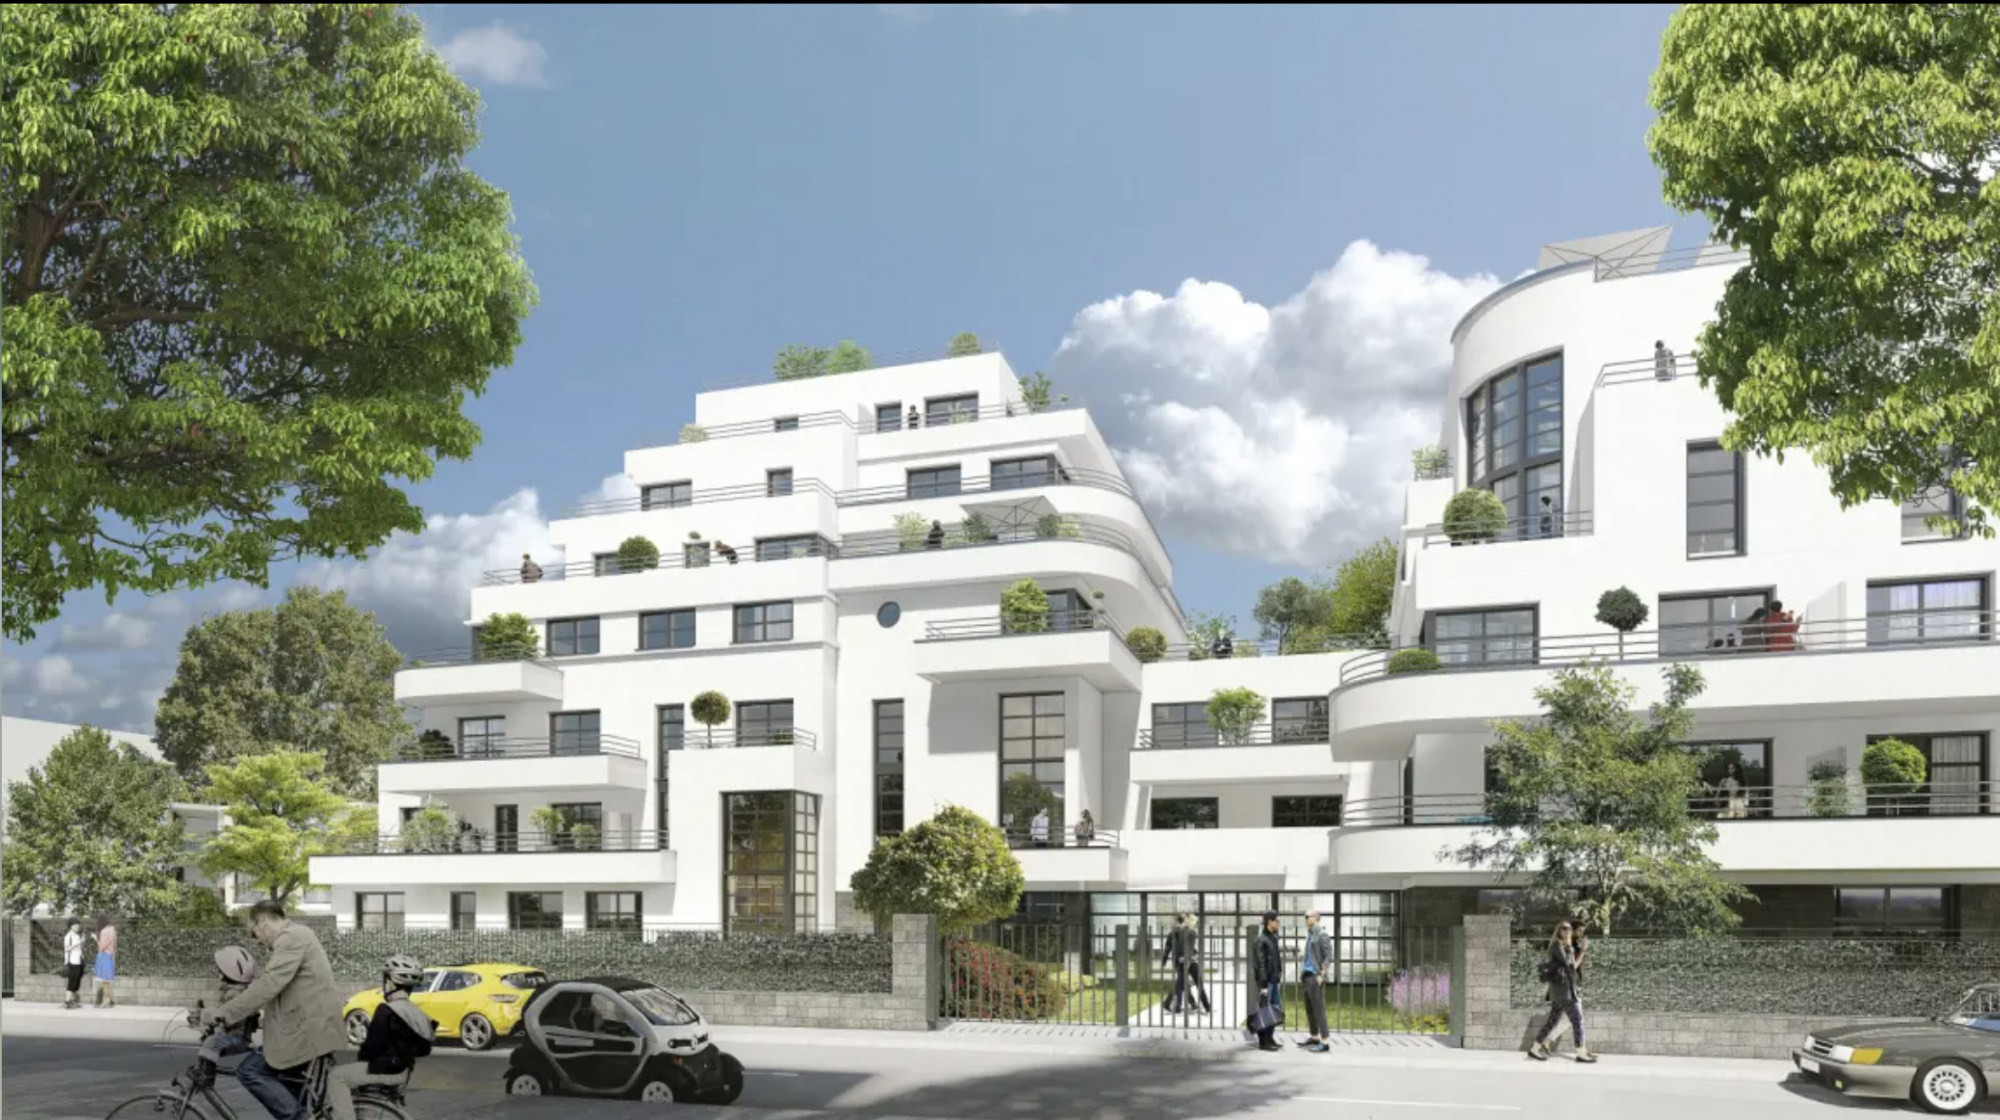 colombes